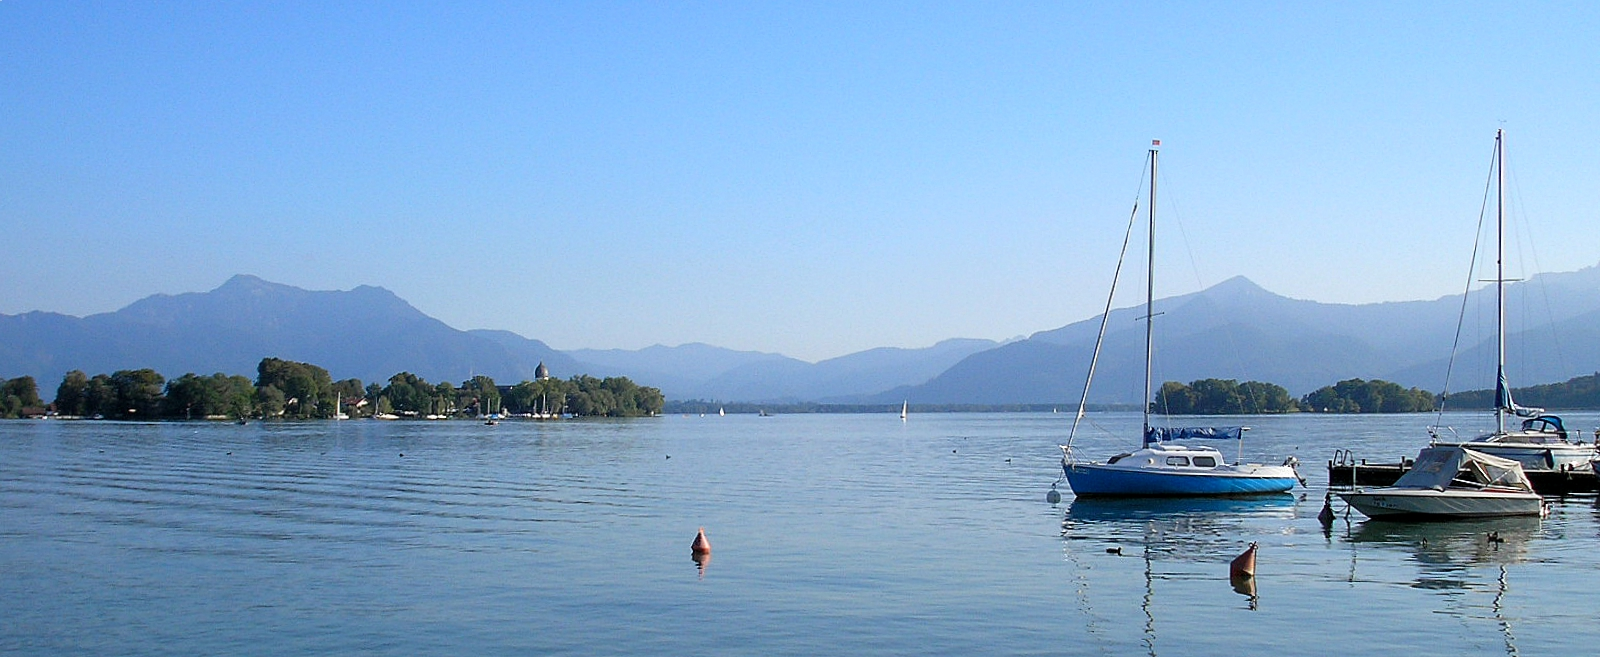 http://upload.wikimedia.org/wikipedia/commons/6/68/Chiemsee_Gstaad.jpg